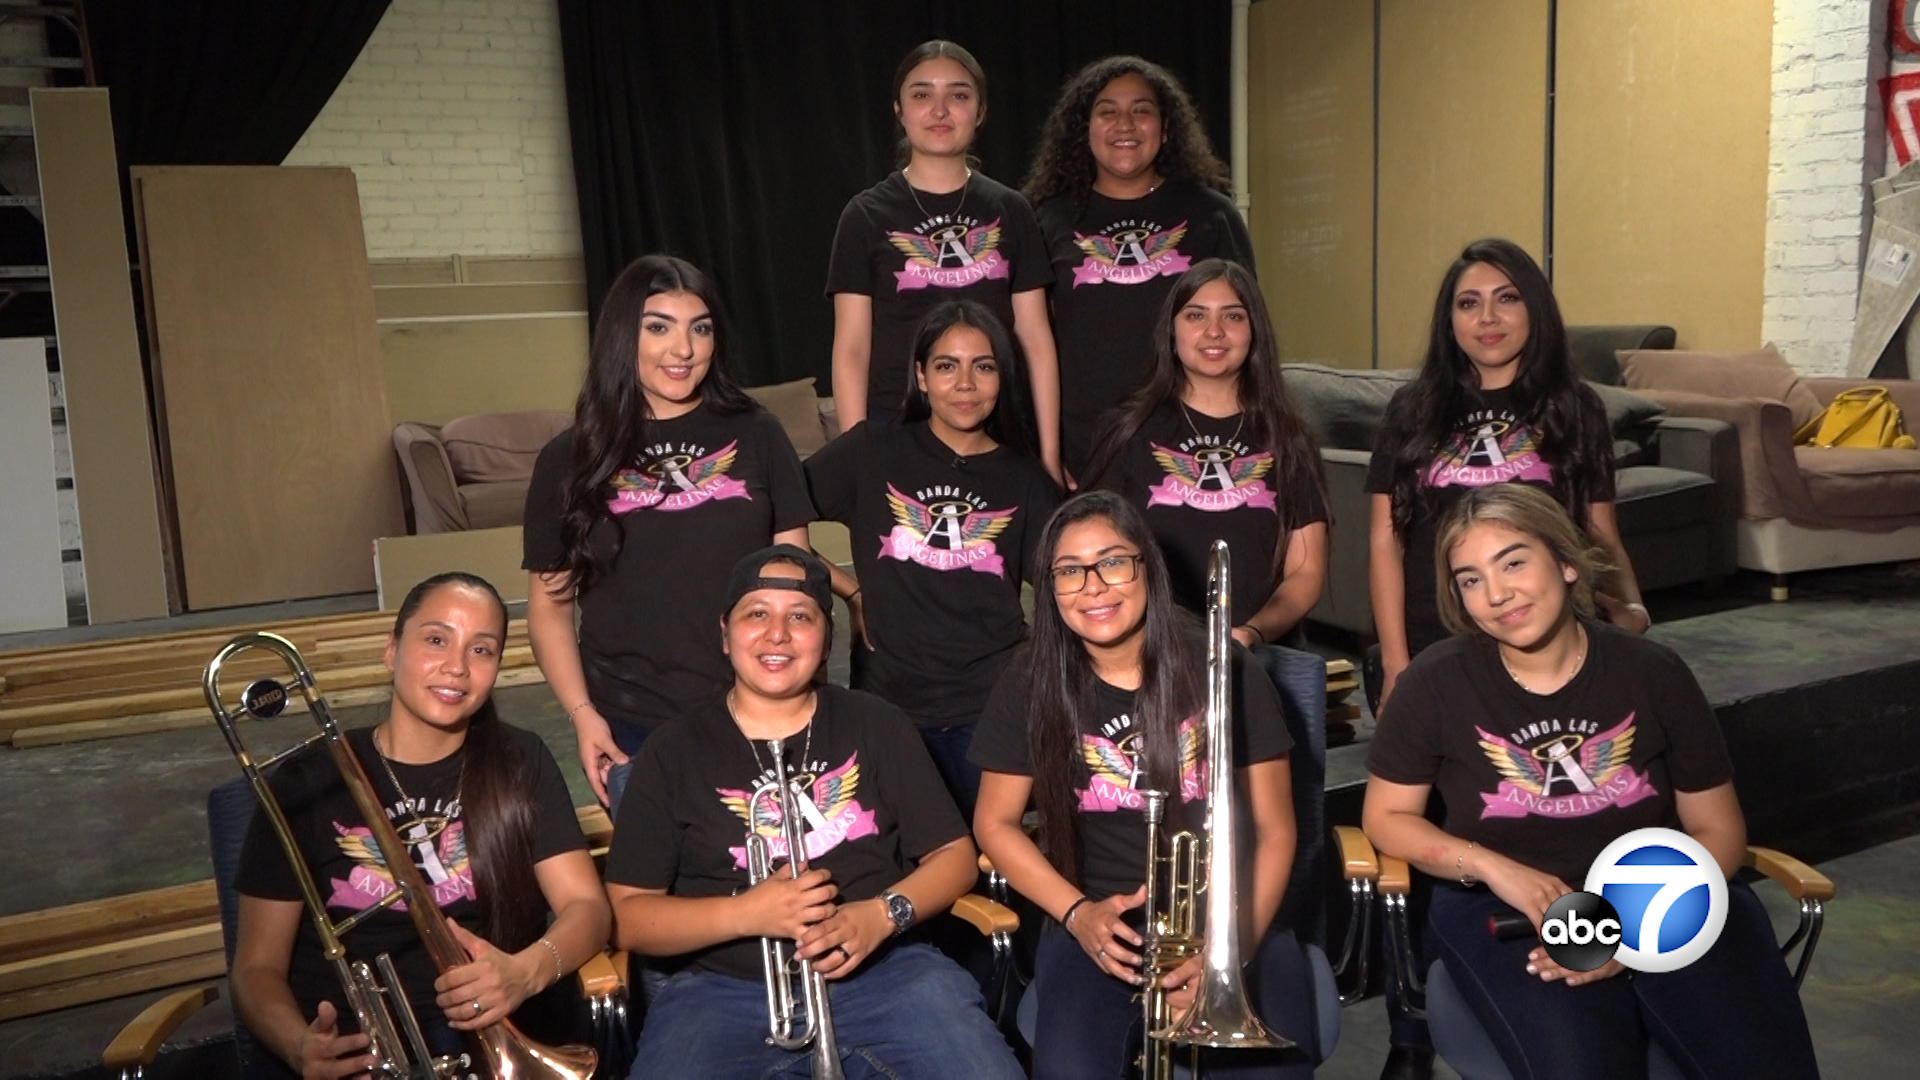 All-female banda group from LA challenging industry norms